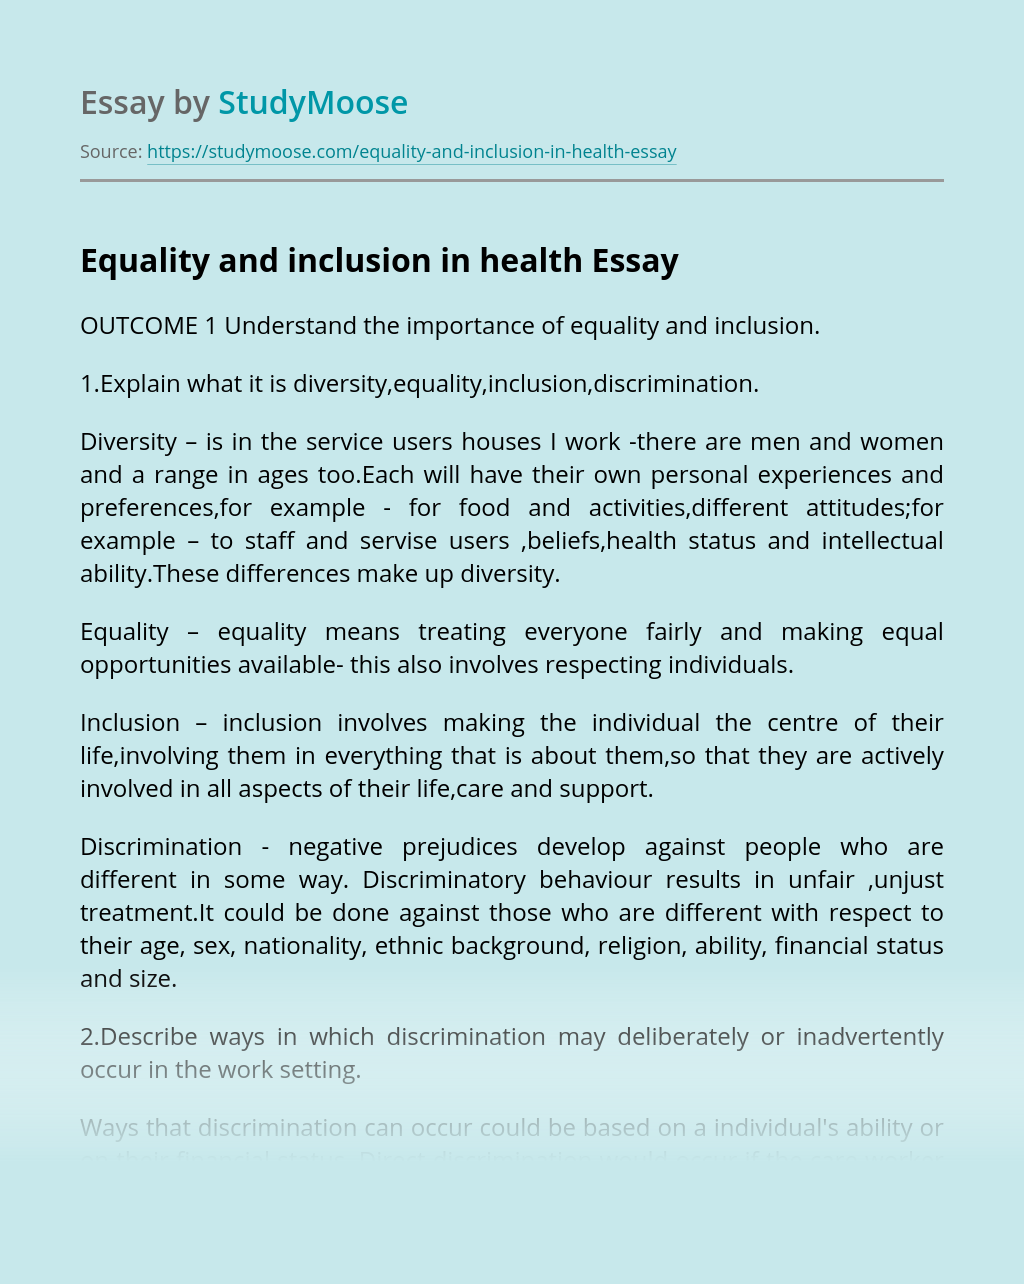 Equality and inclusion in health